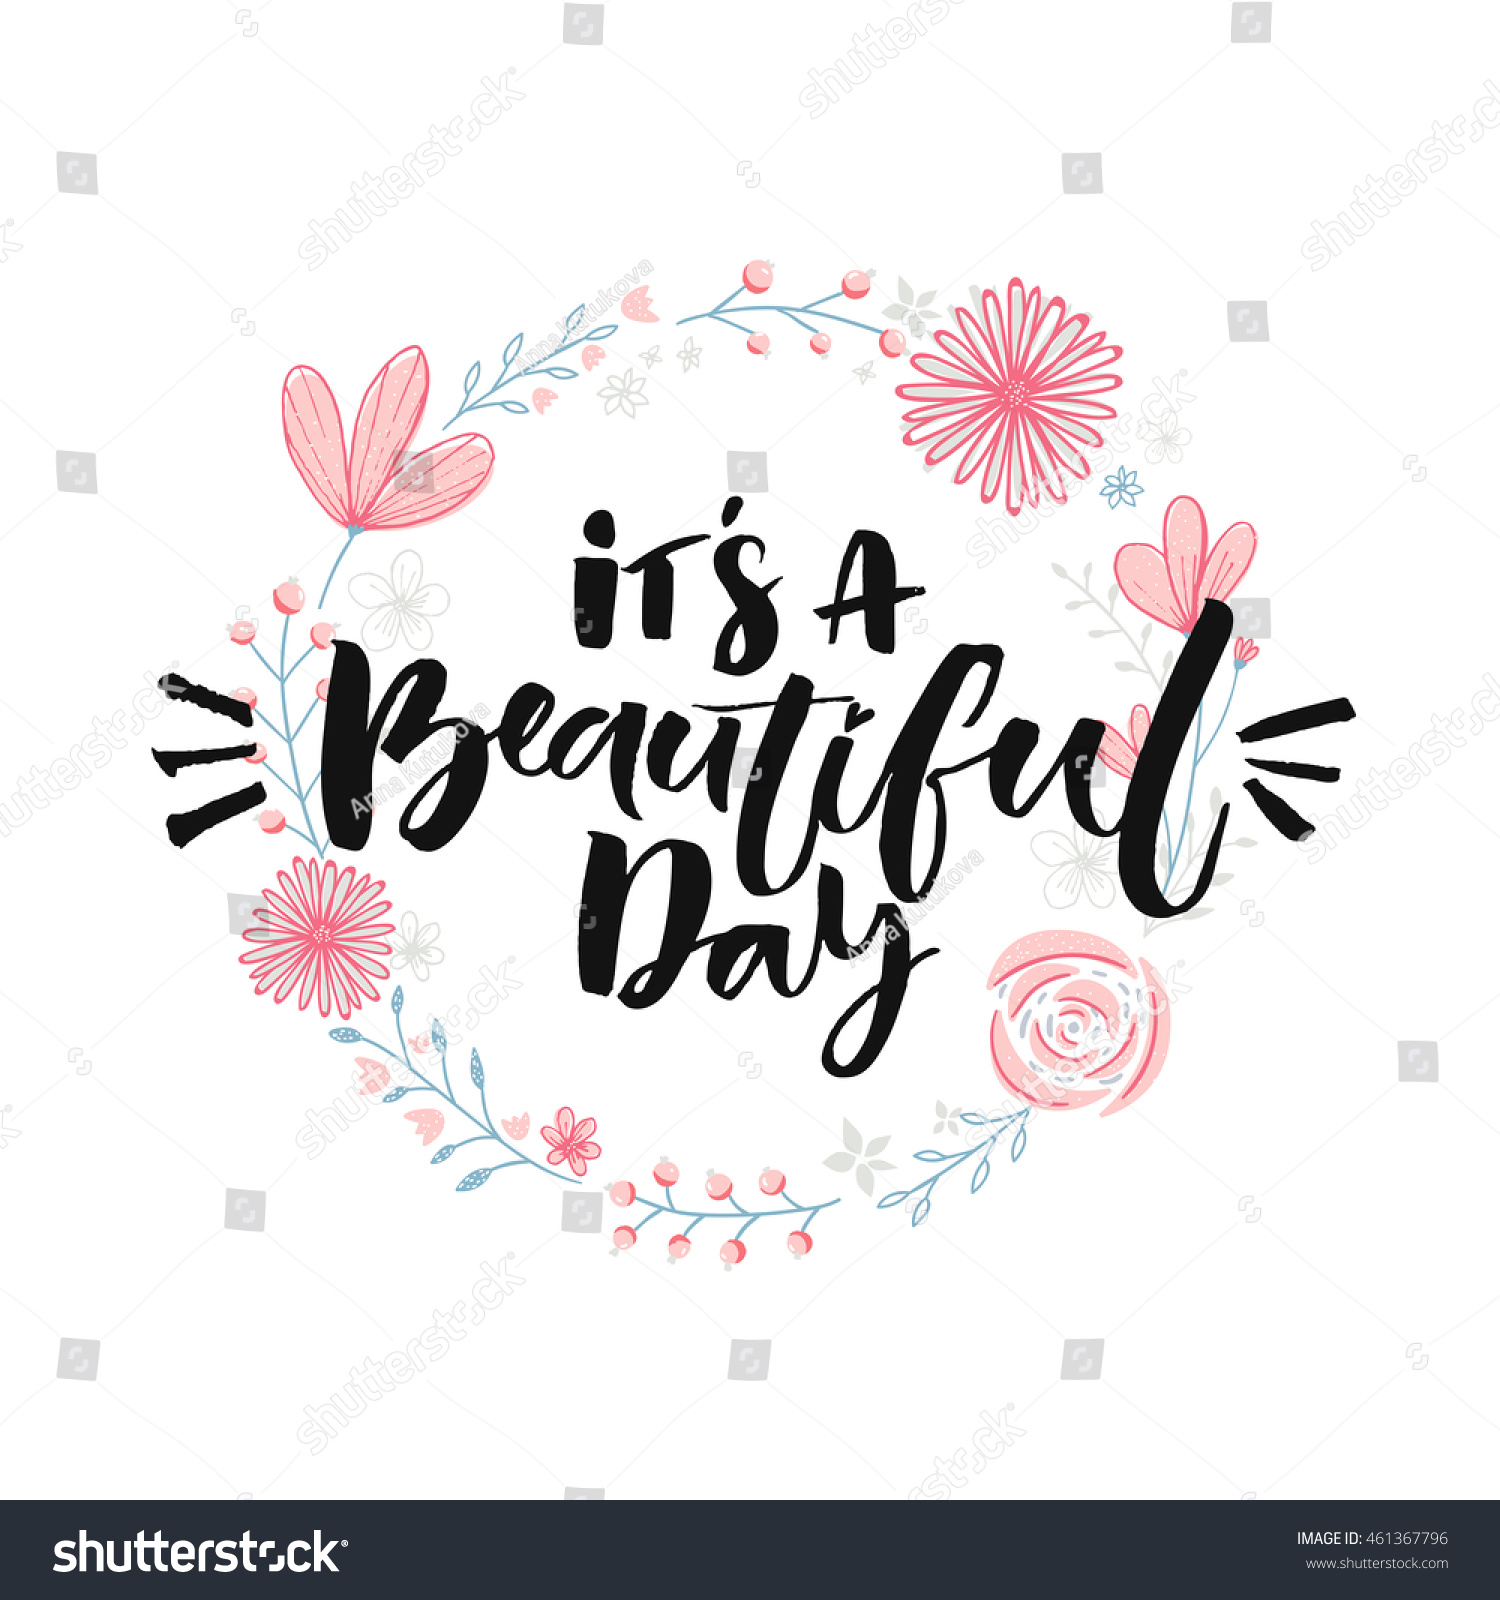 Beautiful Day Brush Lettering Floral Wreath Stock Vector Royalty